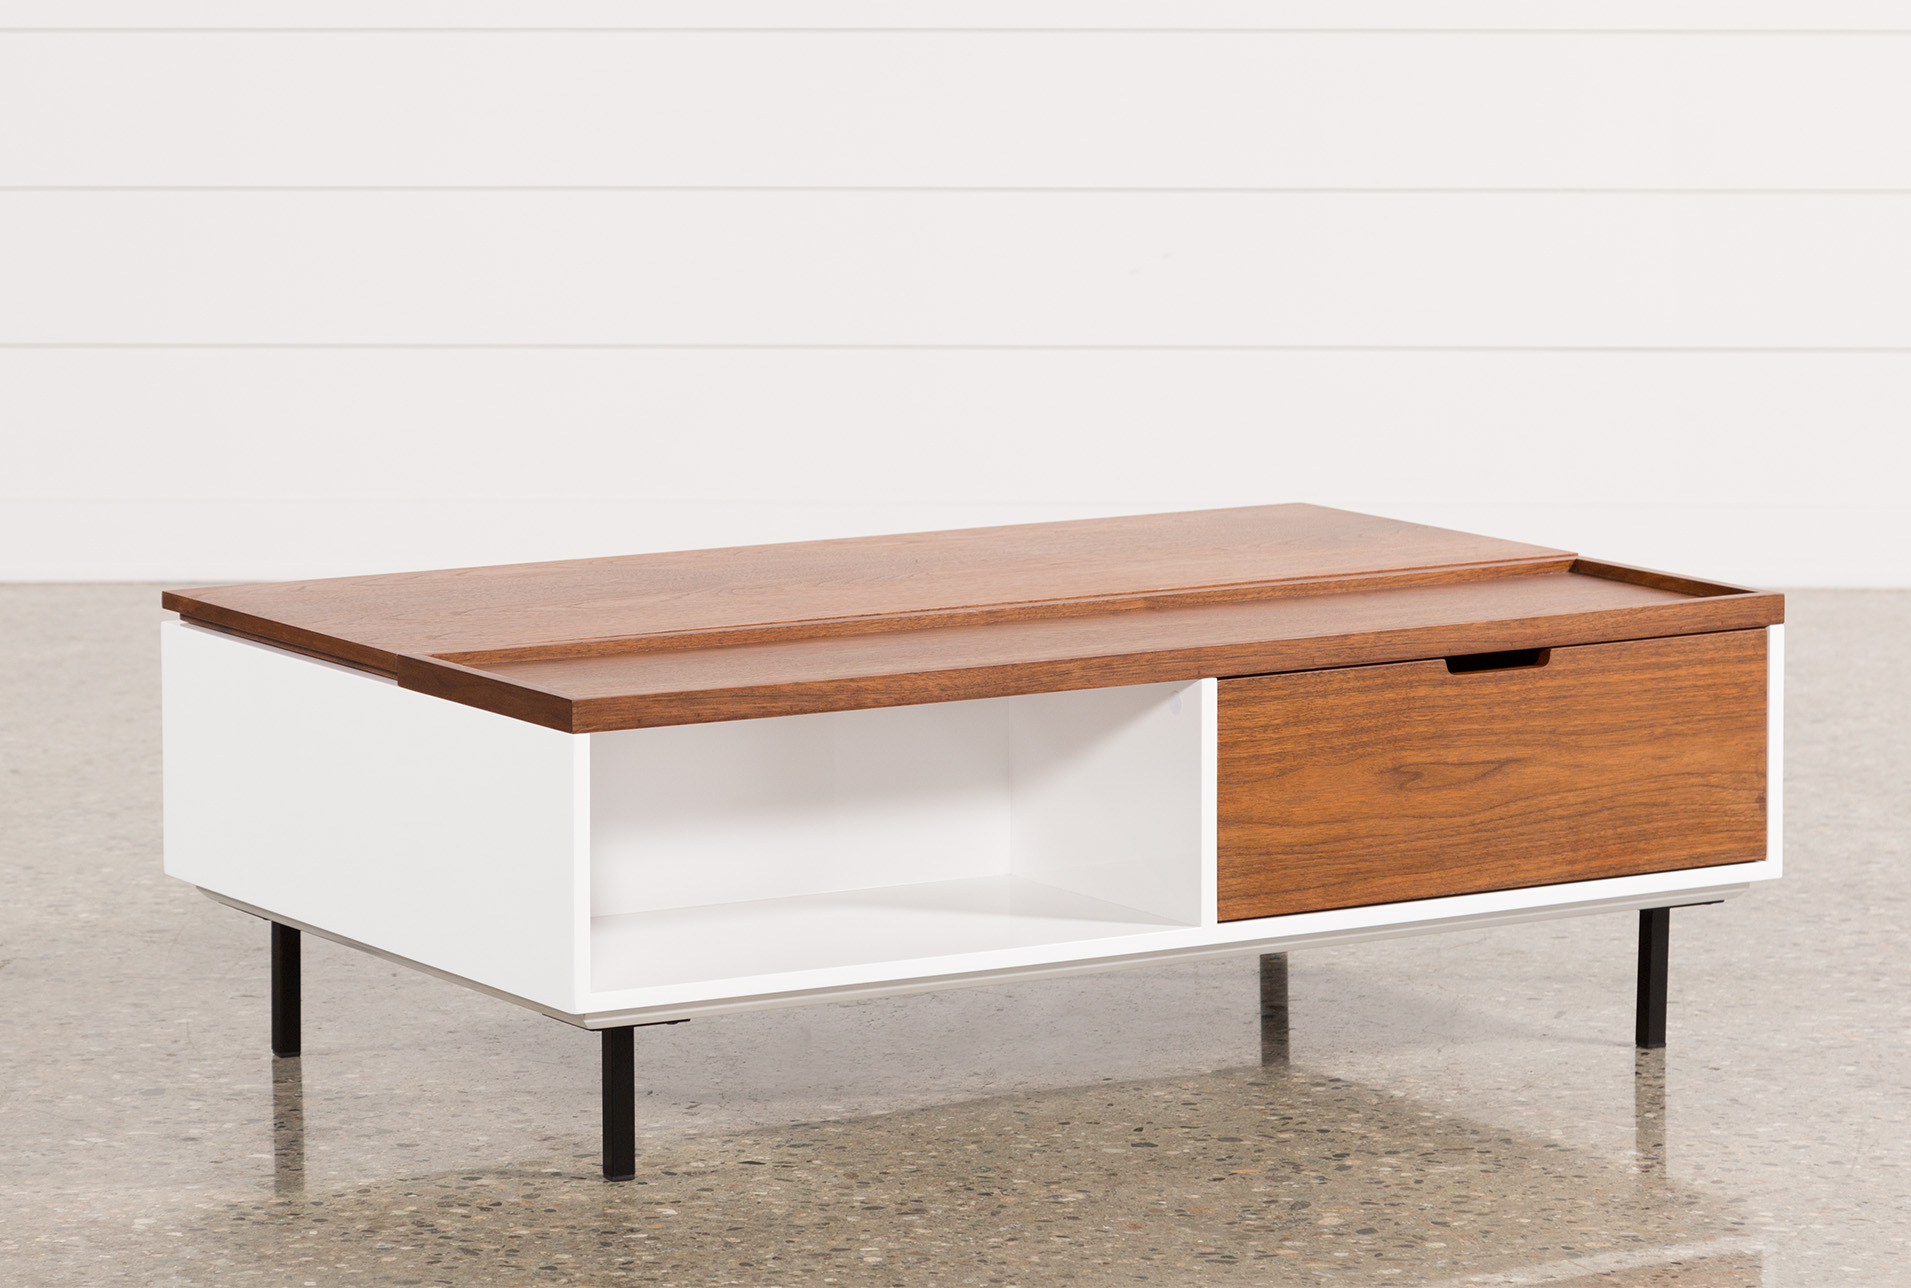 Charmant Jasper Lift Top Cocktail Table (Qty: 1) Has Been Successfully Added To Your  Cart.